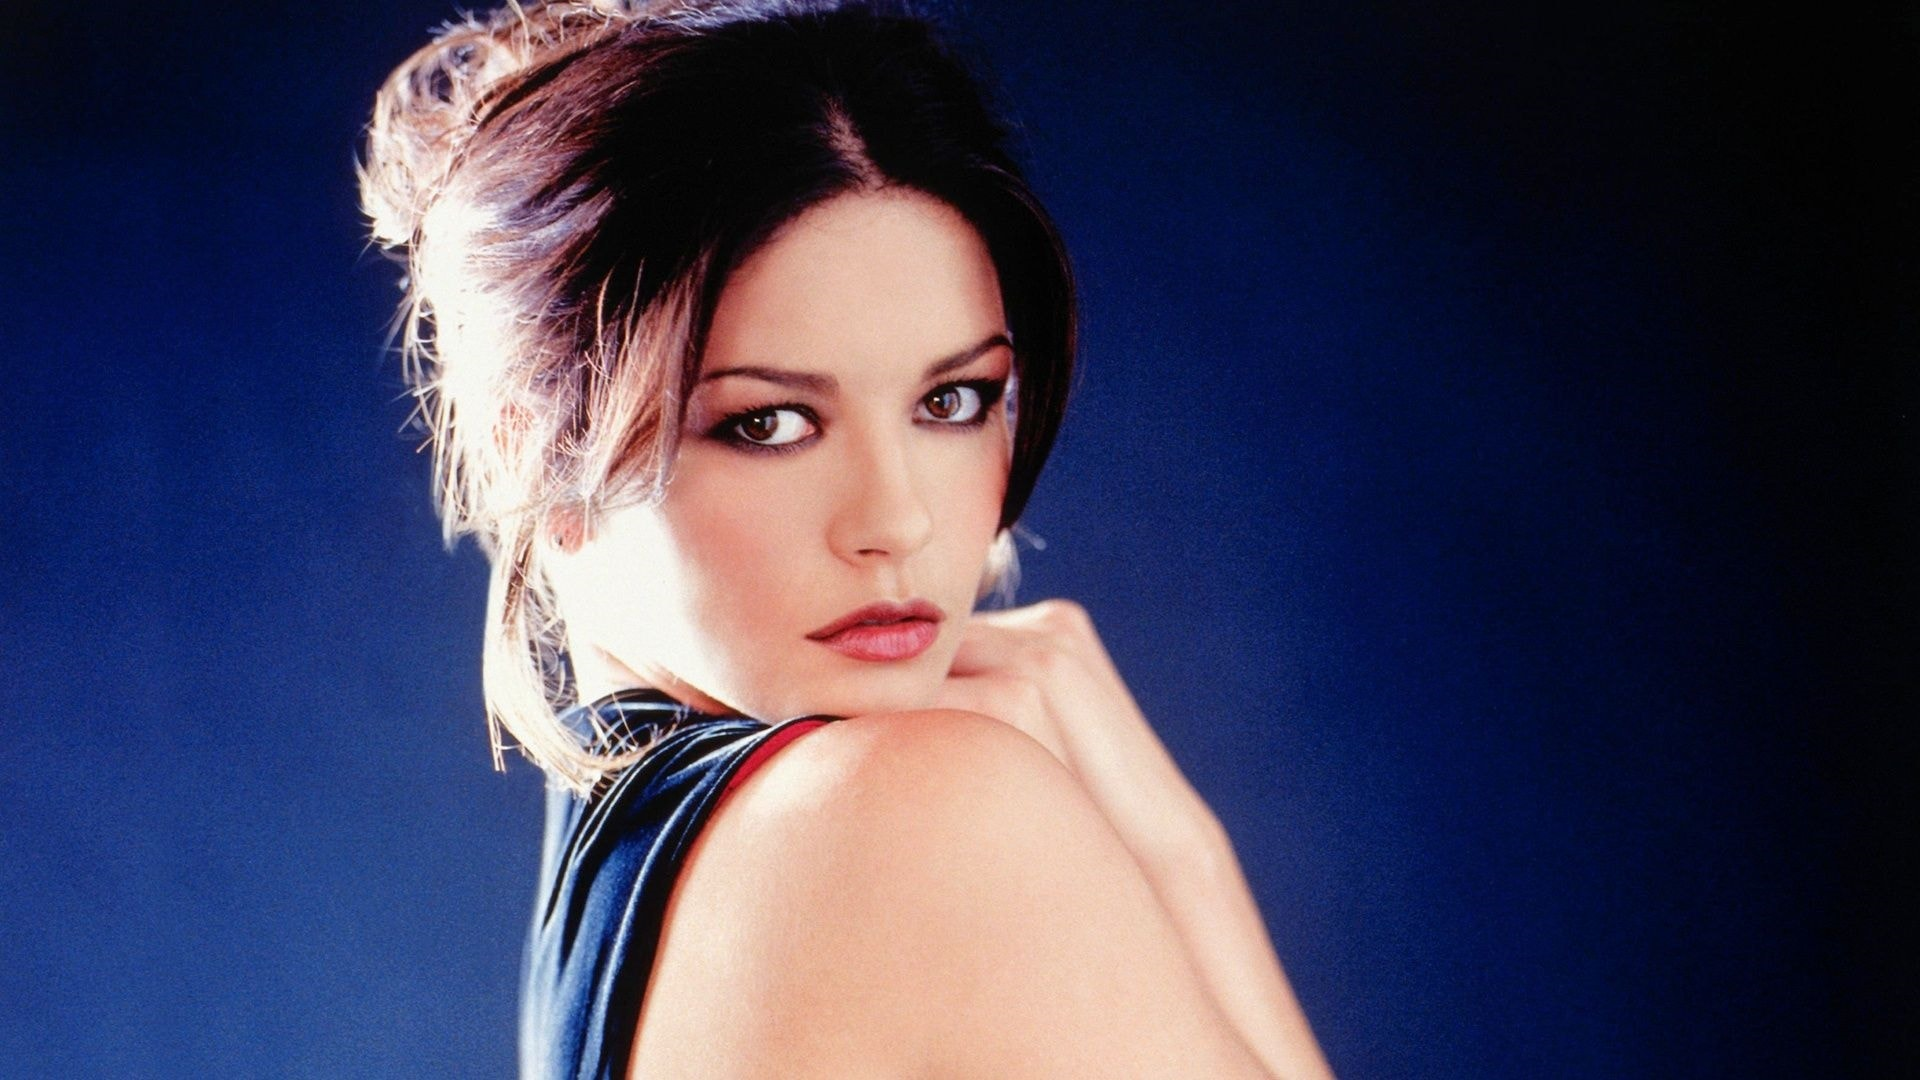 Catherine Zeta-Jones Wallpaper